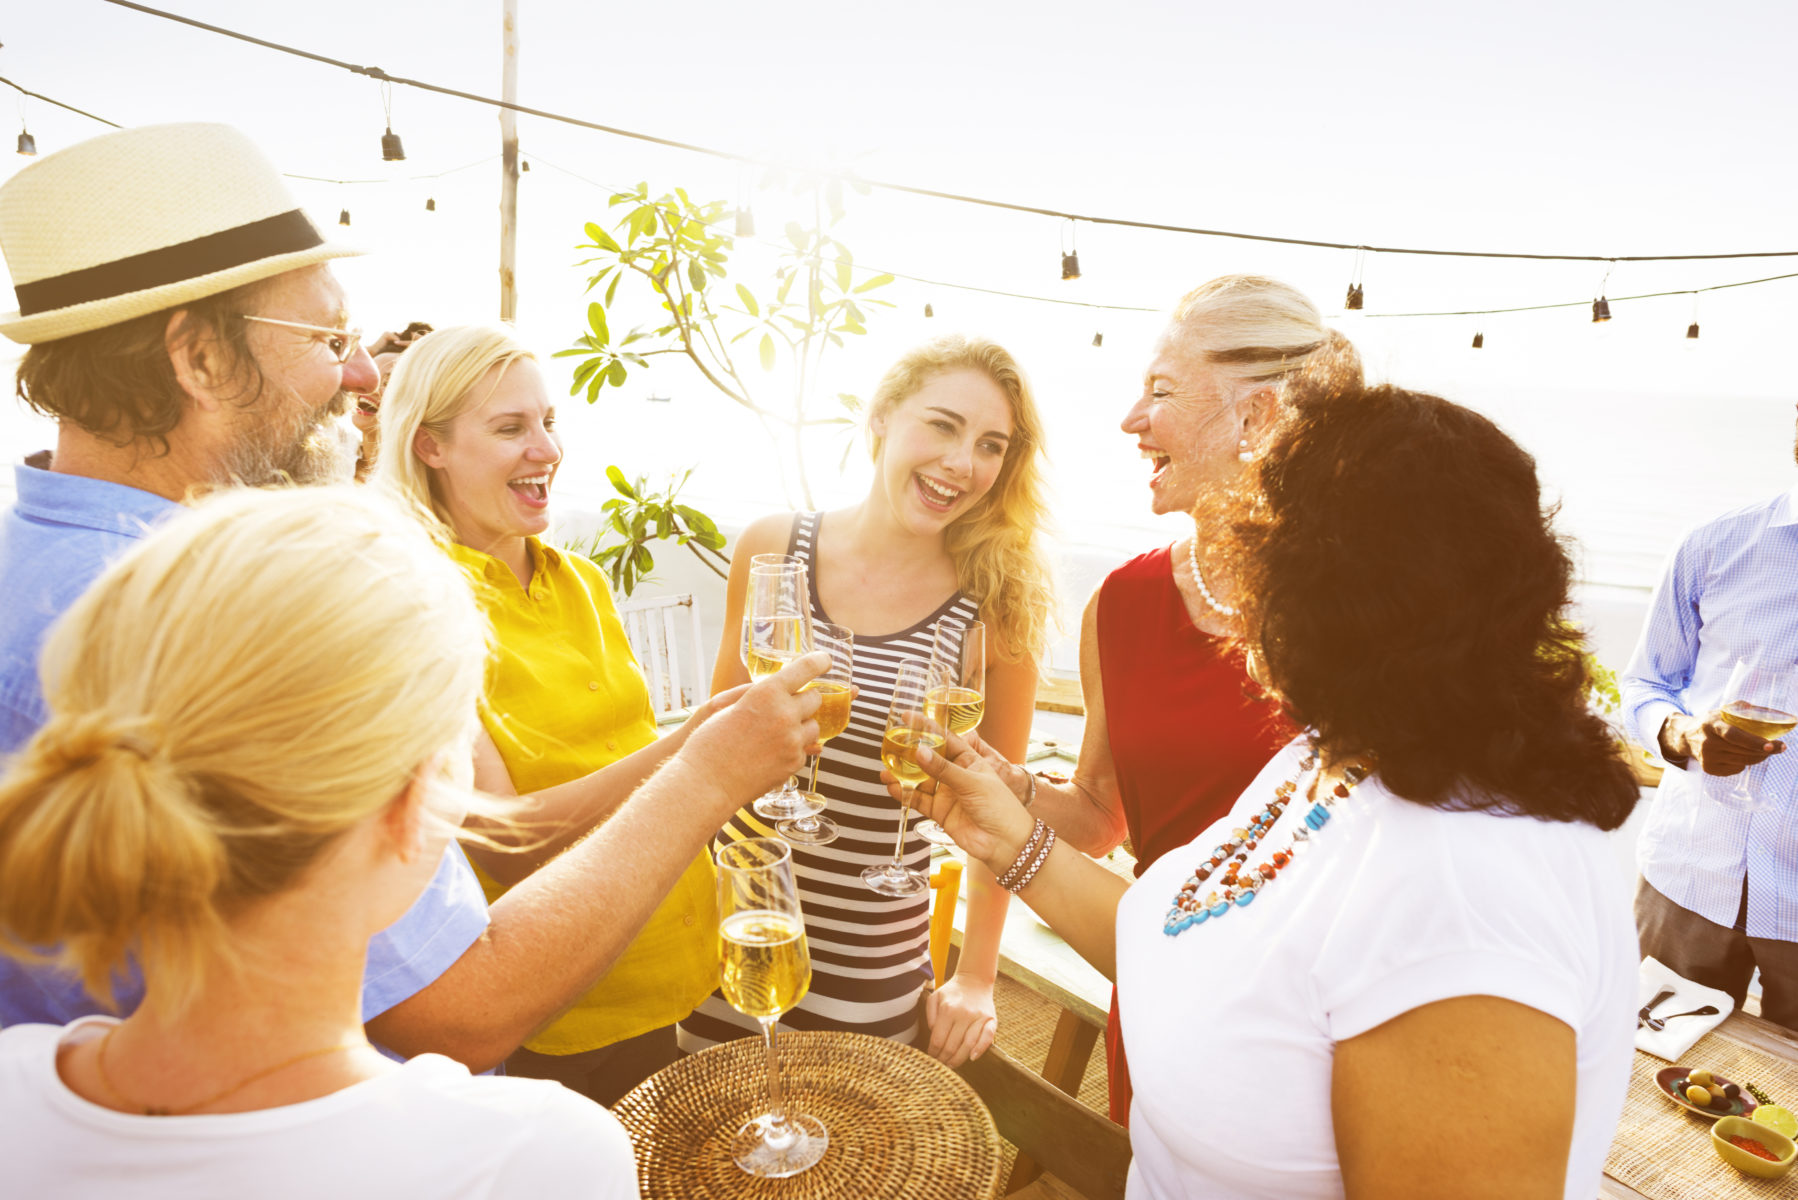 Group of friends enjoying a toast at an outdoor wine festival